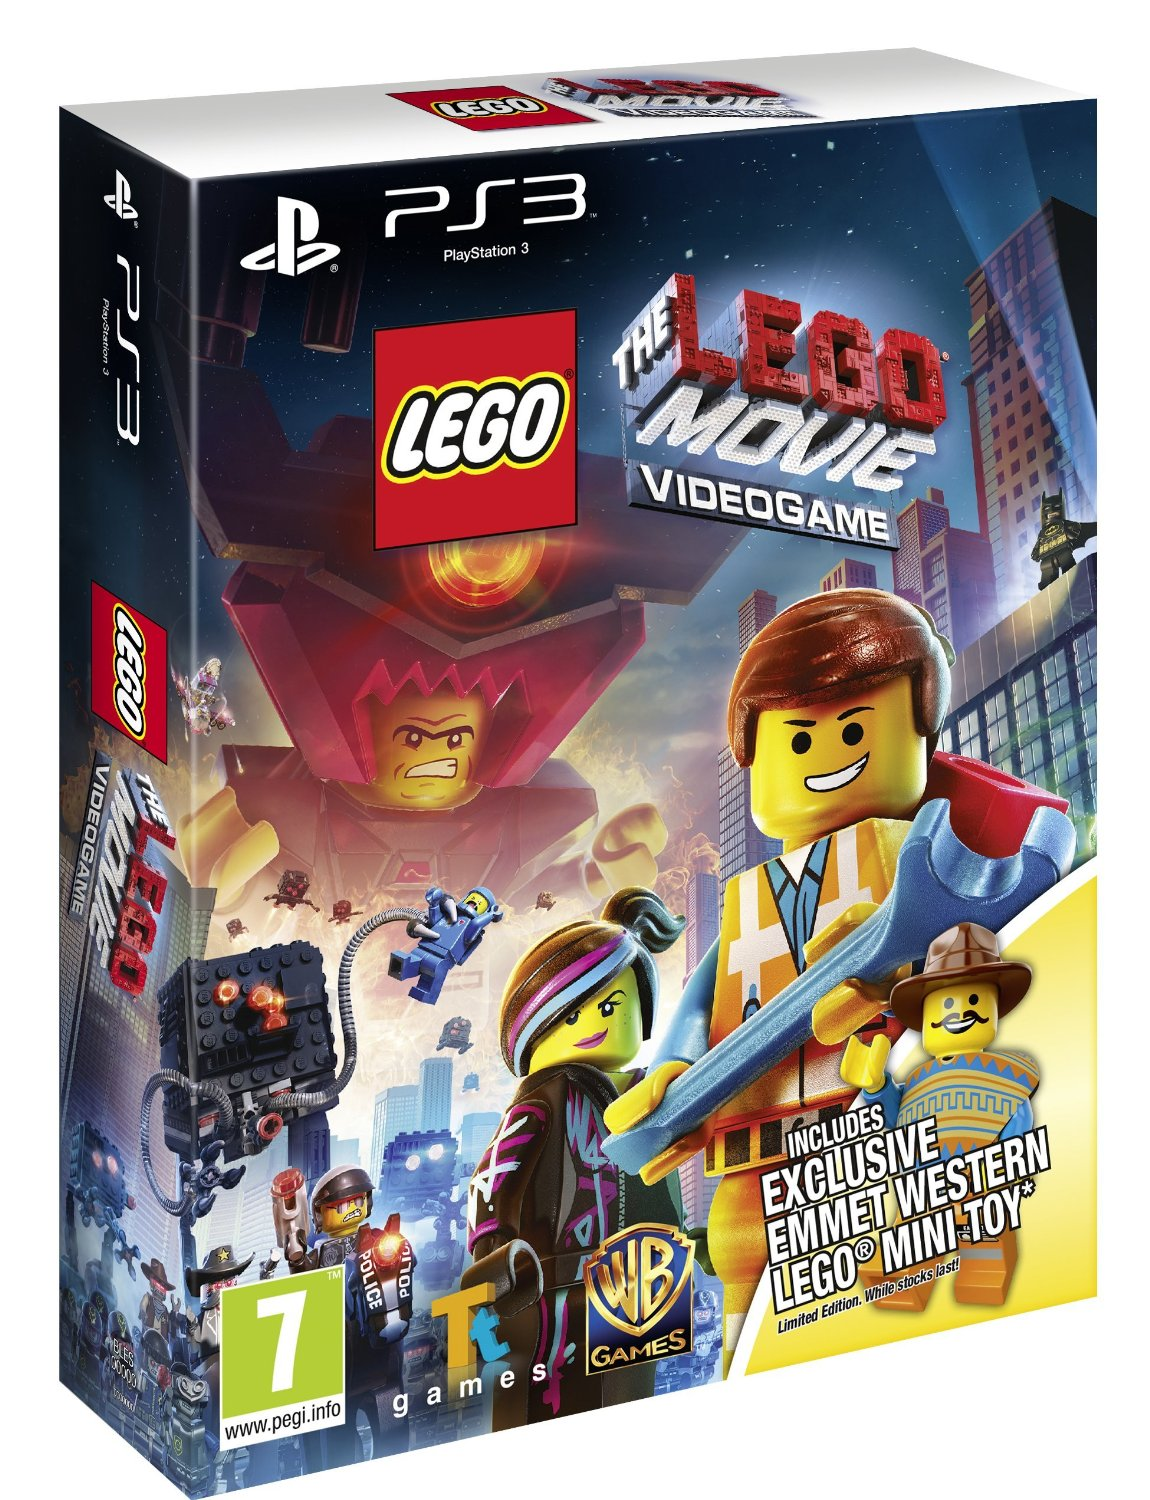 New Lego Games For Ps3 : The lego movie videogame western emmet minitoy edition